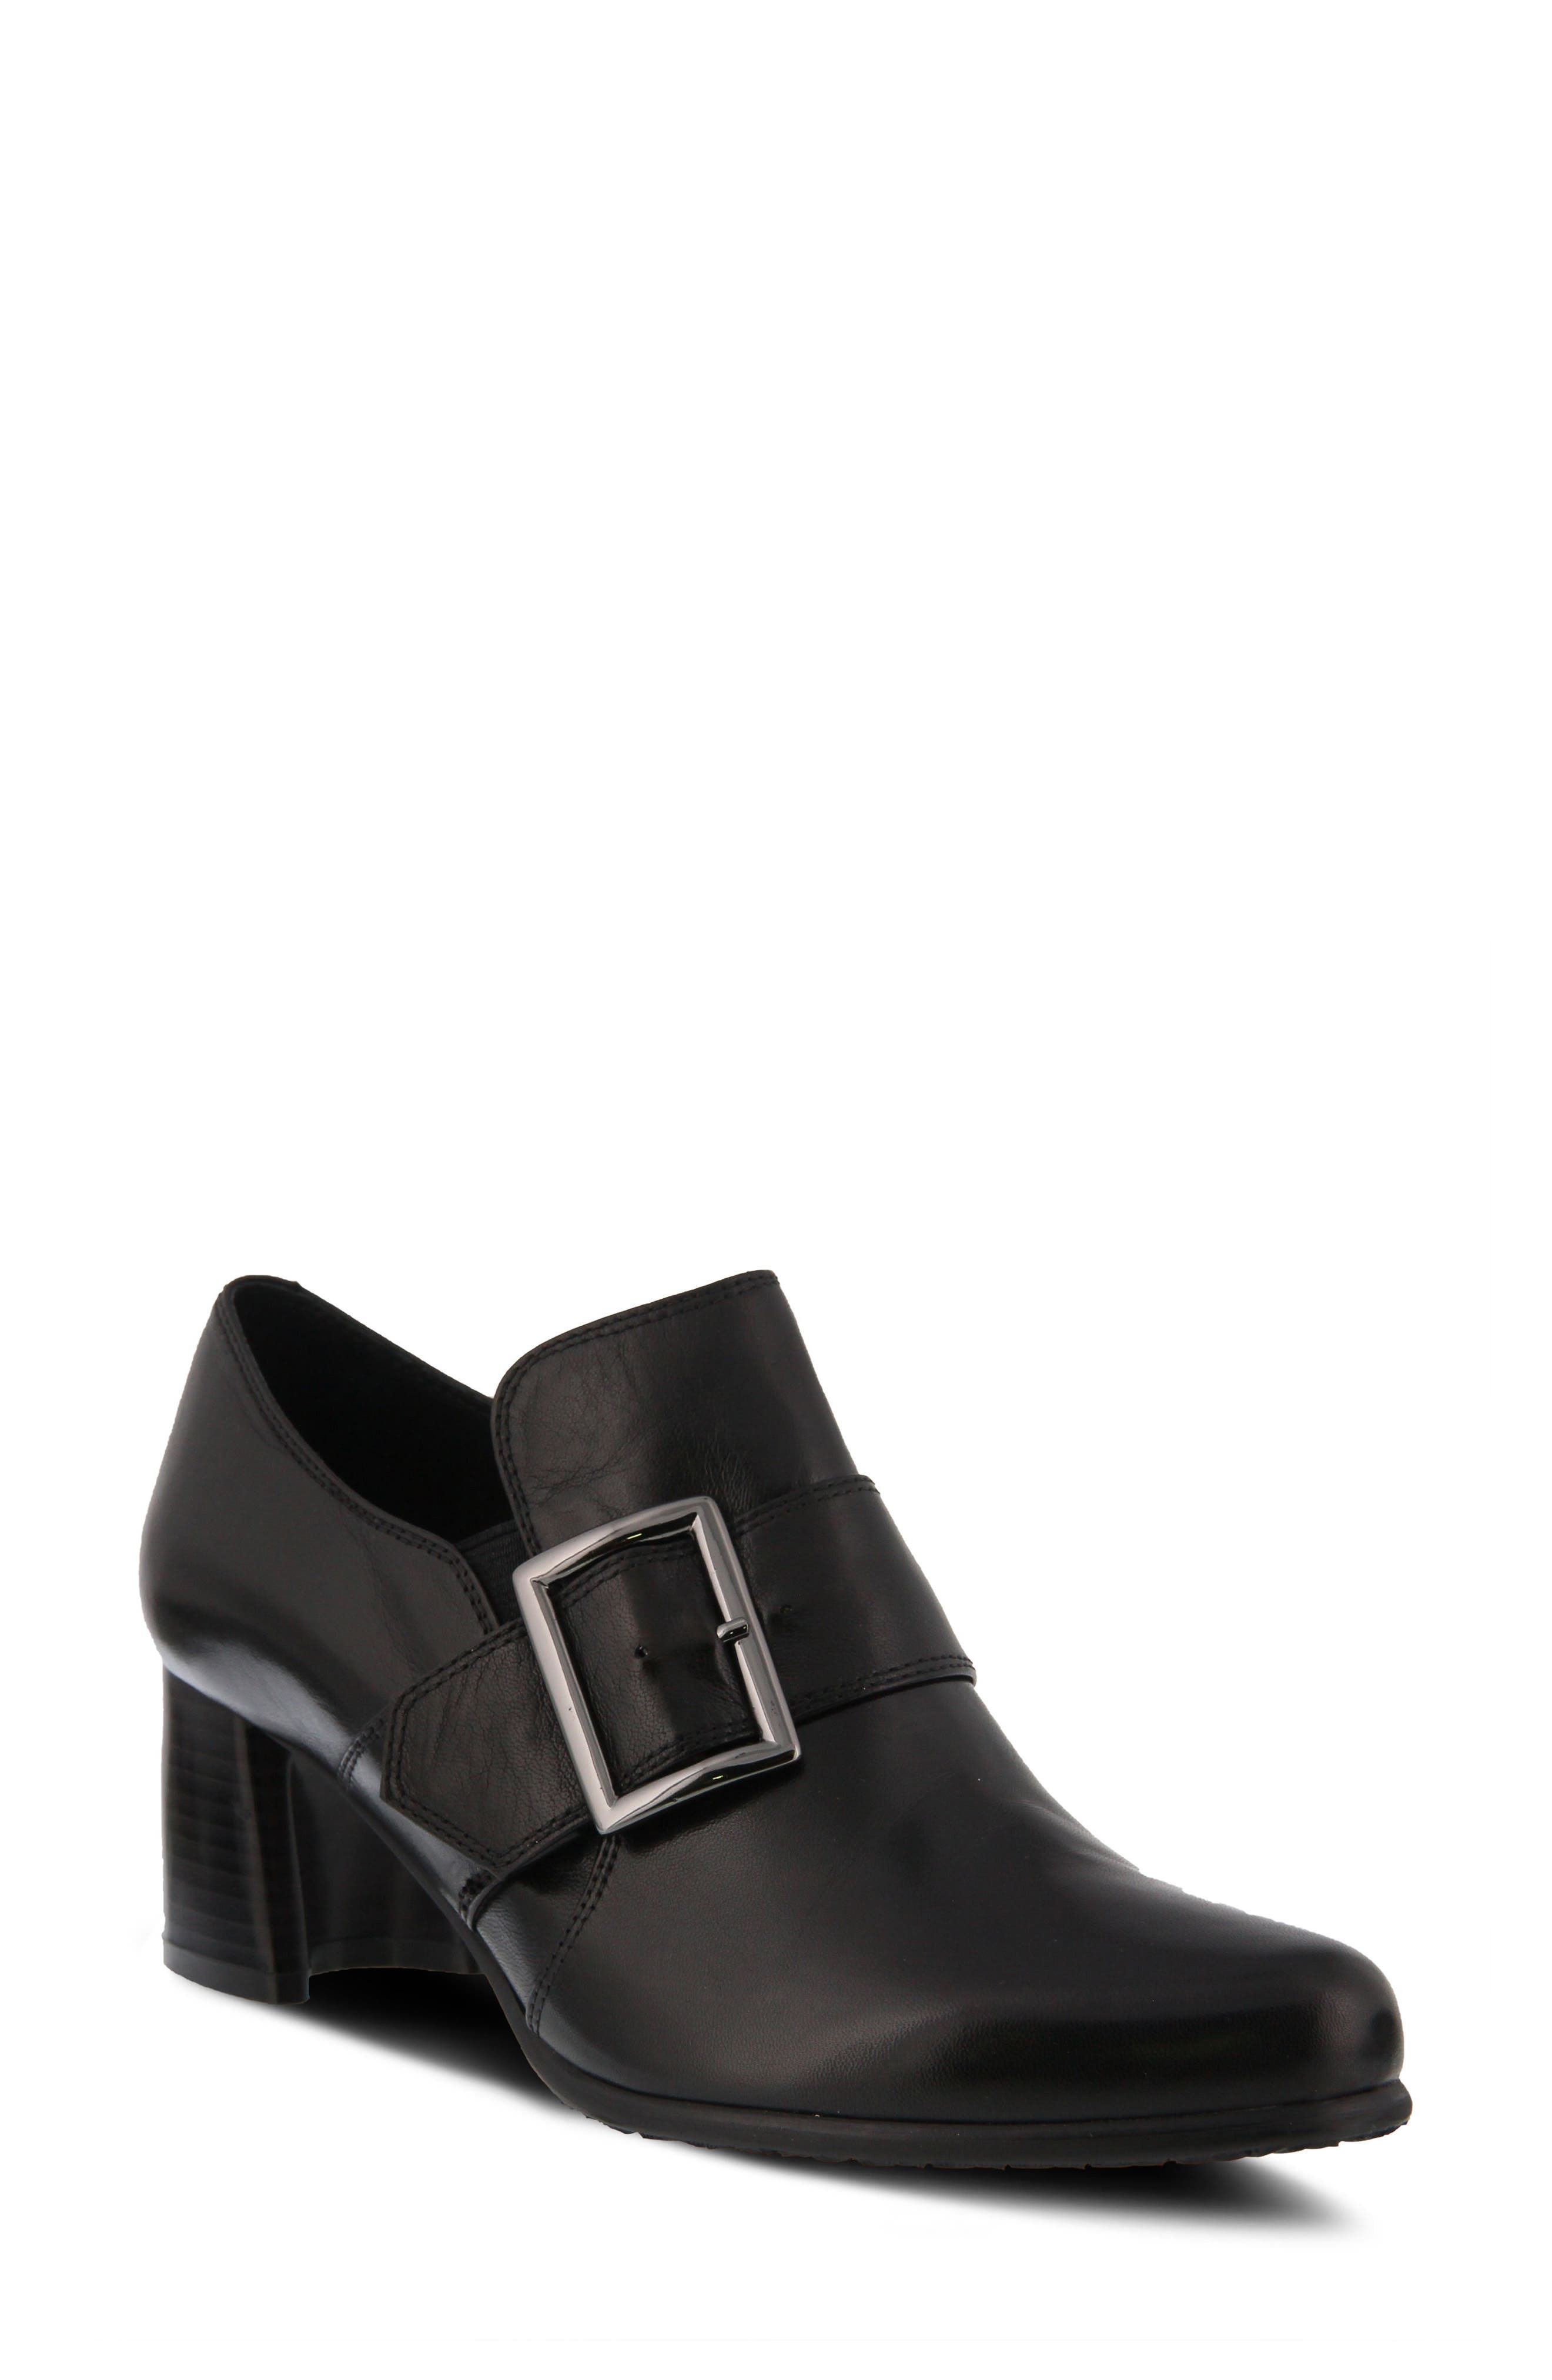 Dayana Bootie,                         Main,                         color, BLACK LEATHER